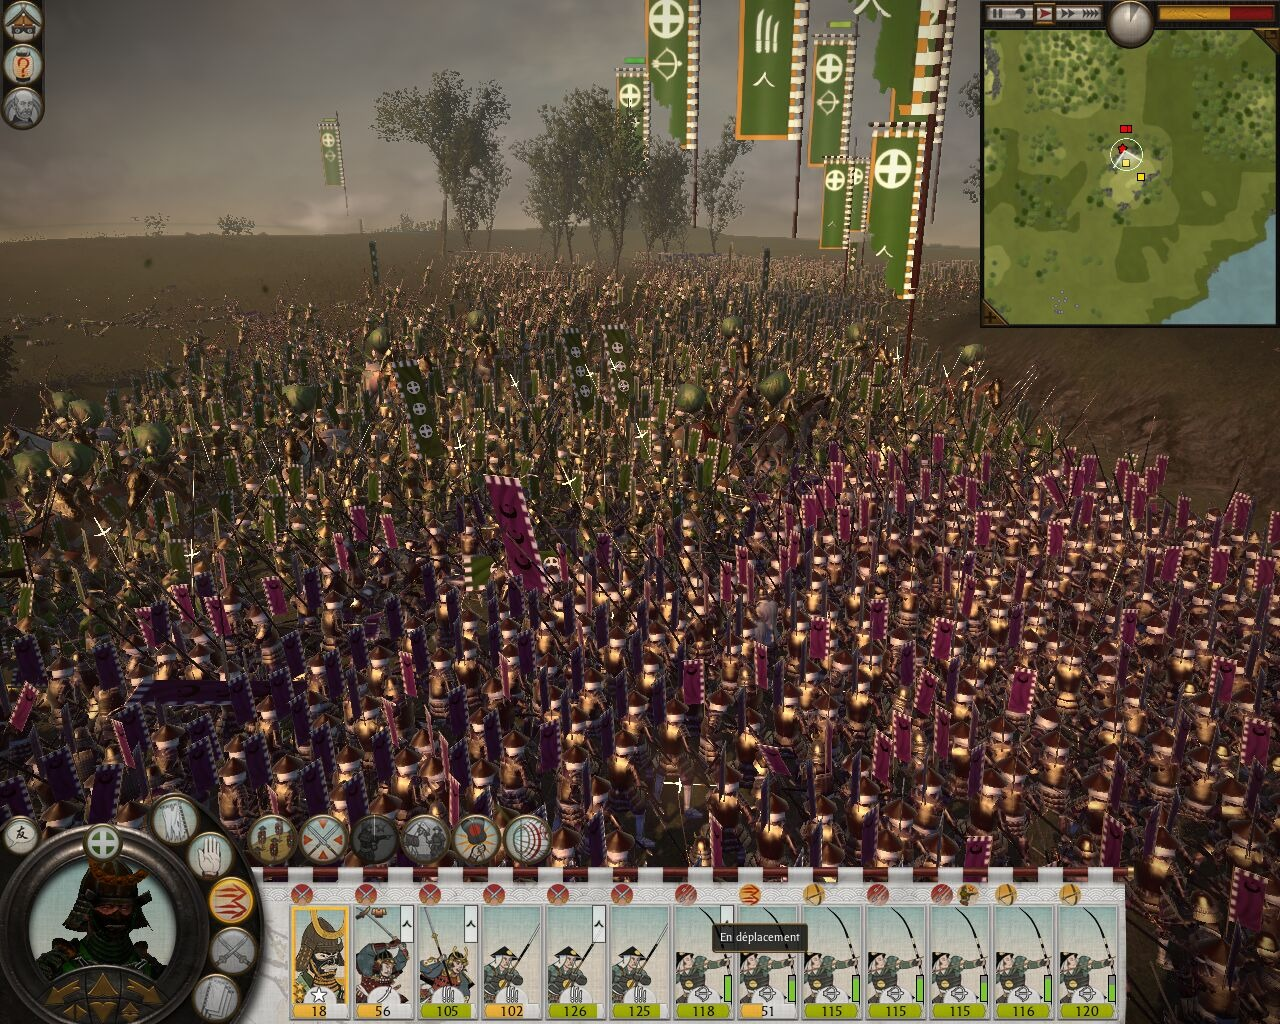 http://image.jeuxvideo.com/images/pc/t/o/total-war-shogun-2-pc-1299839627-062.jpg